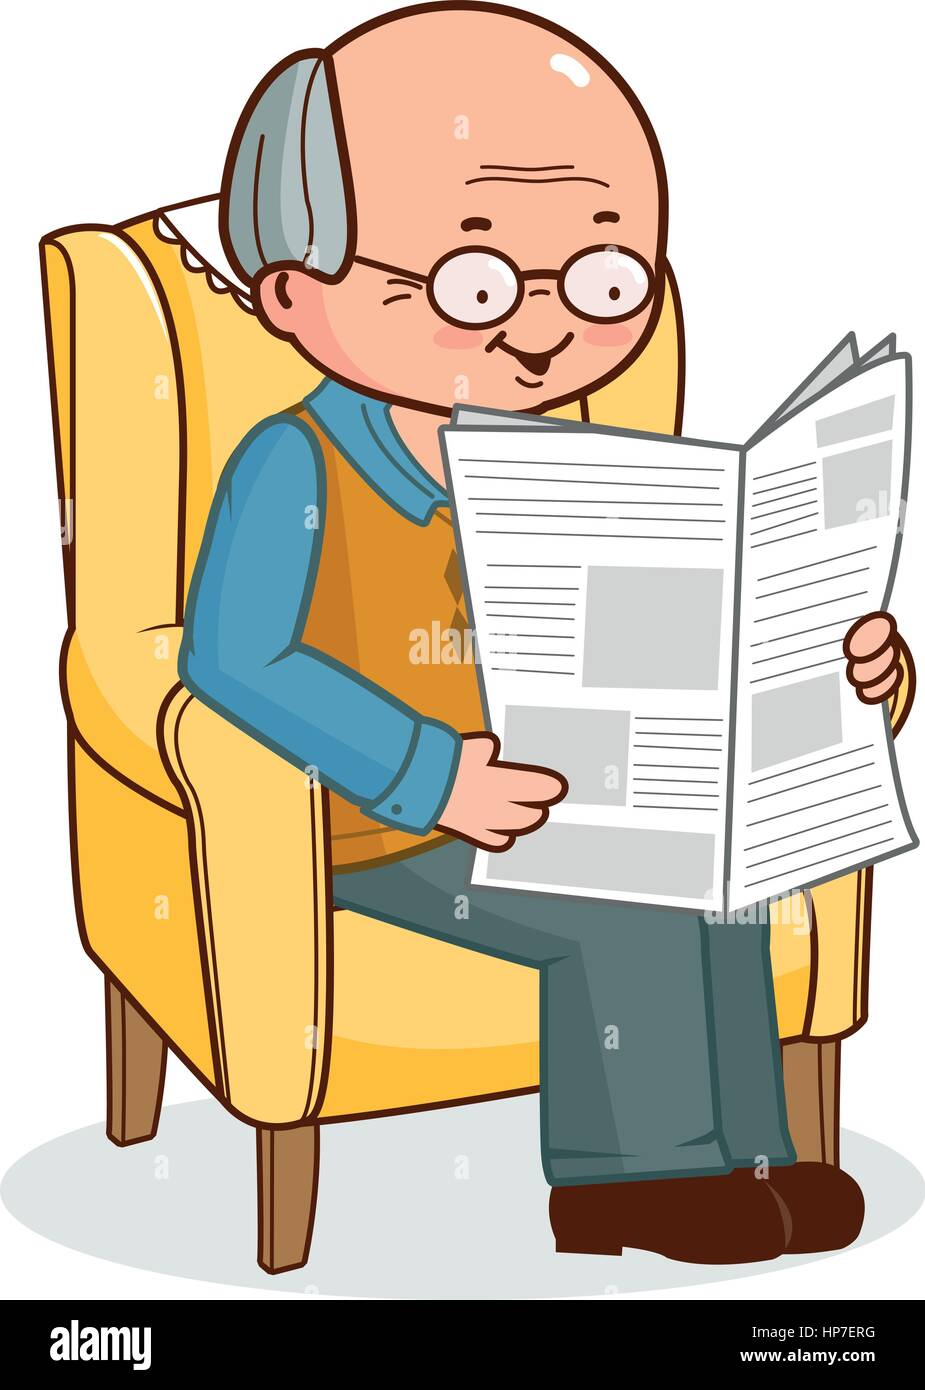 grandpa reading newspaper stock vector images - alamy